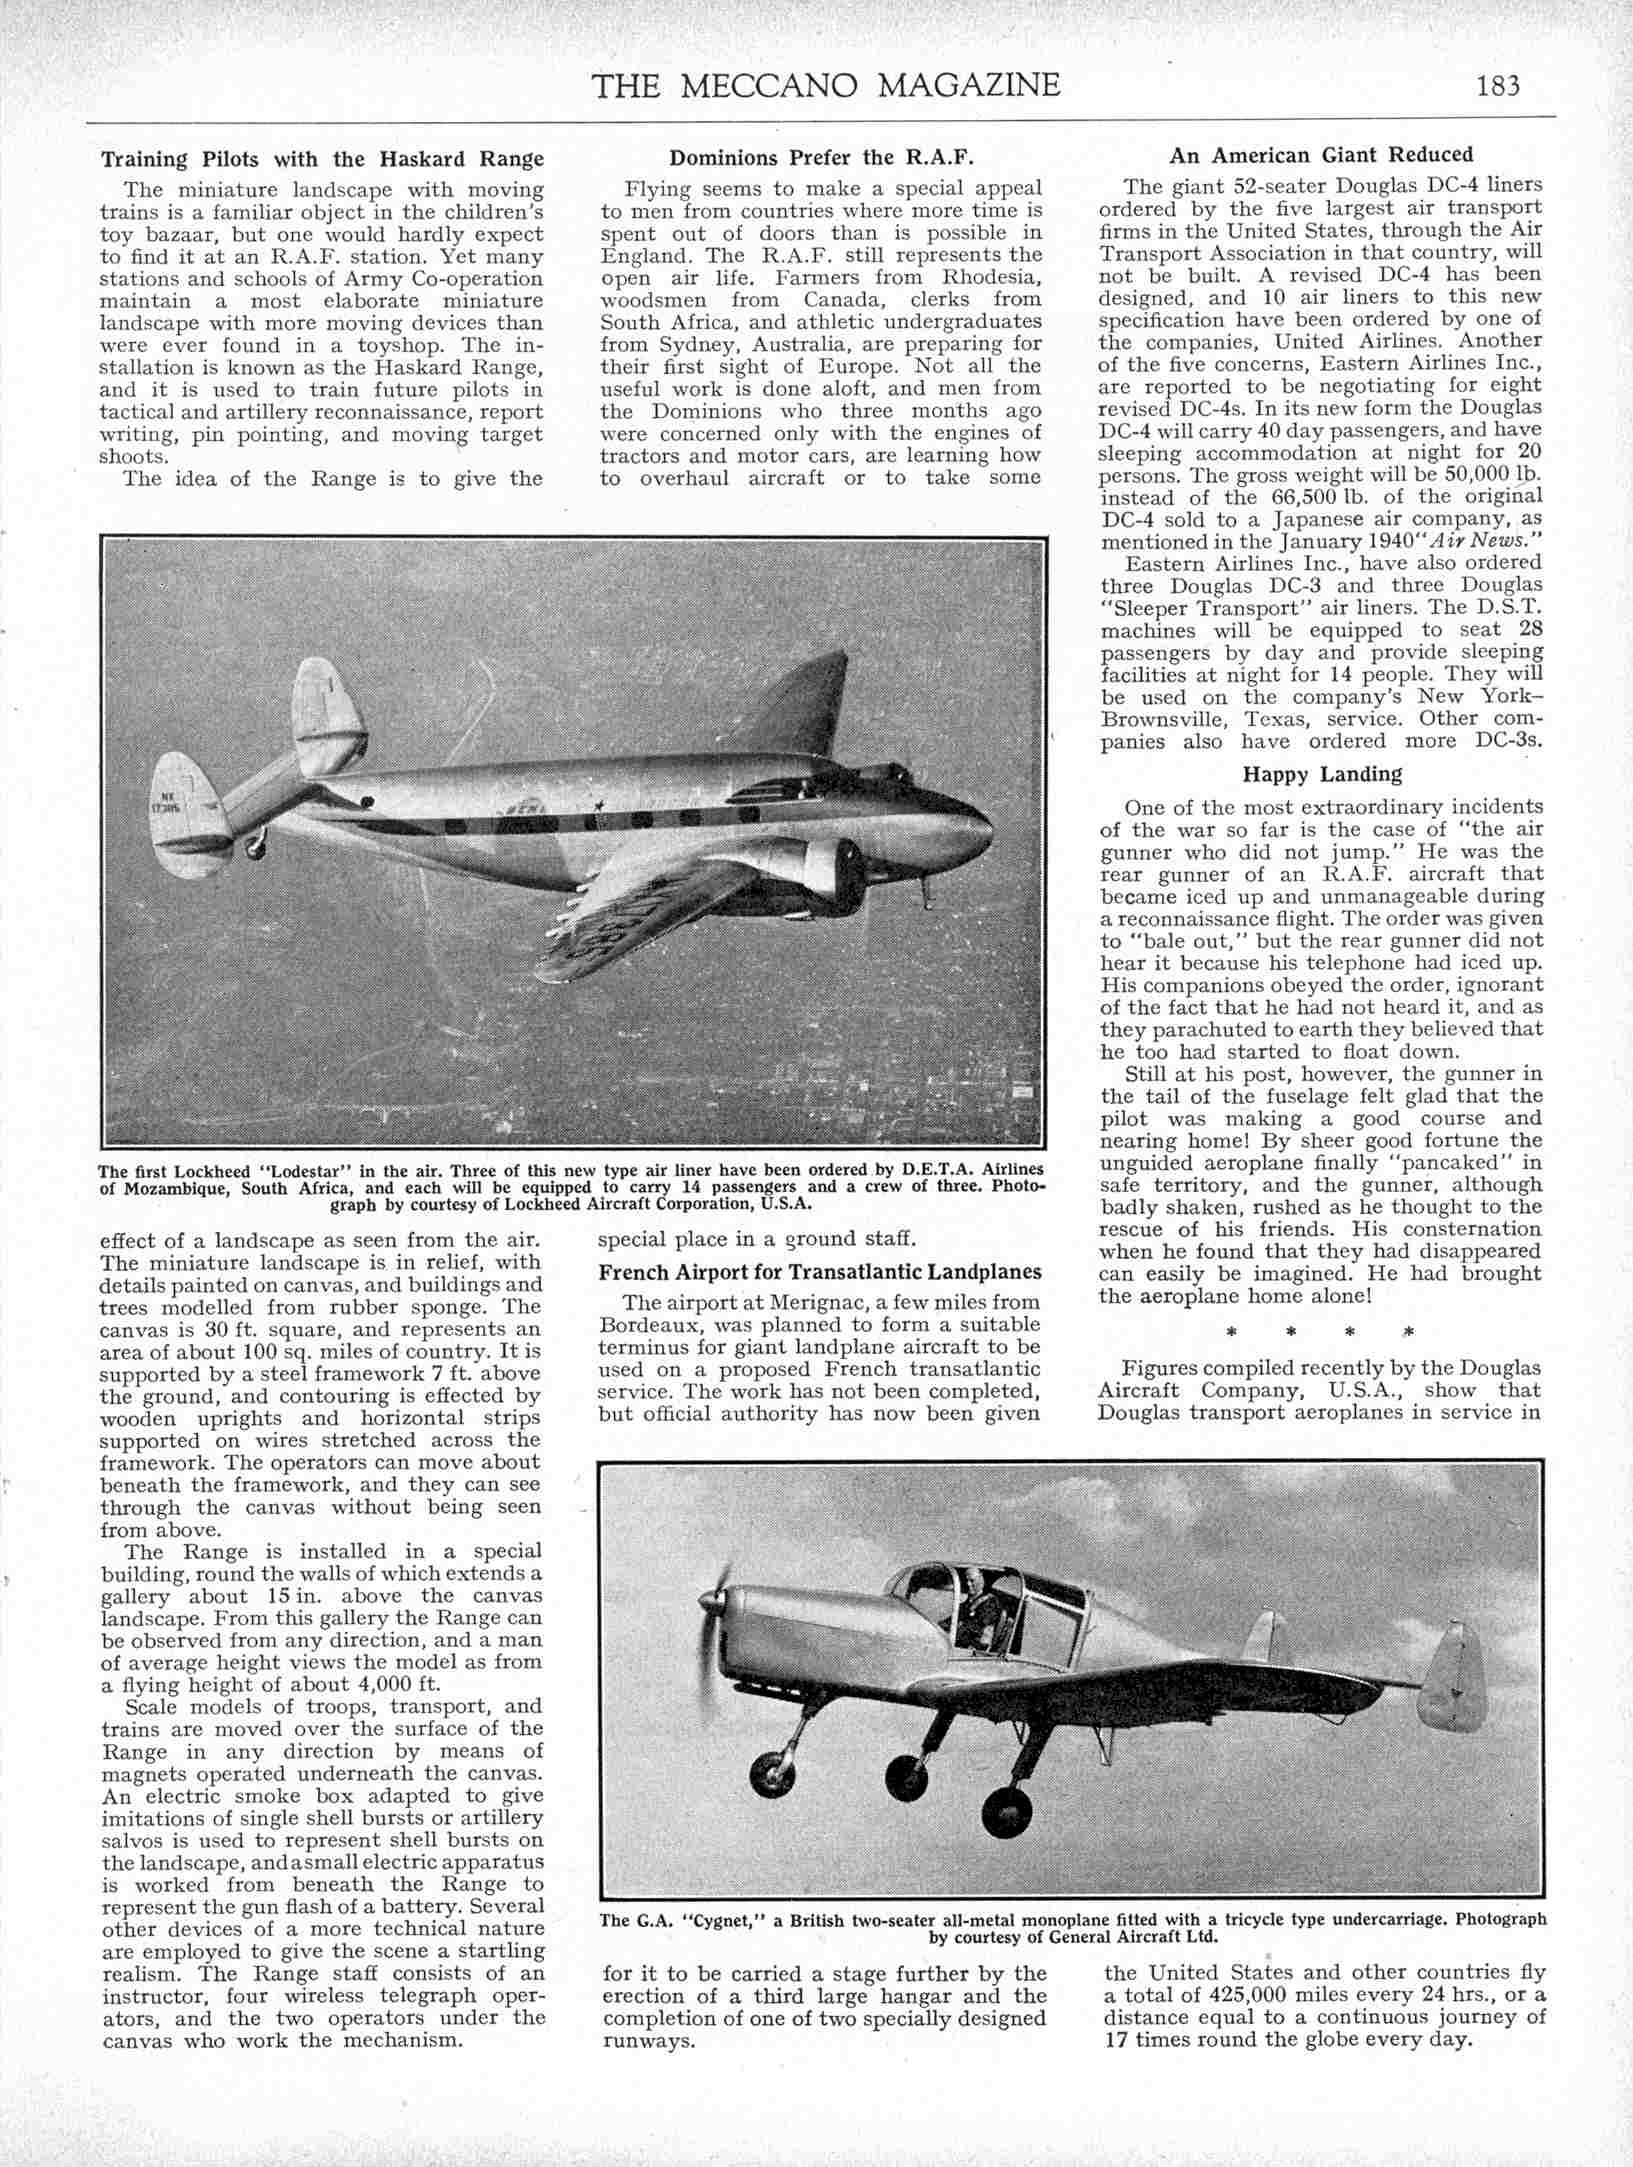 UK Meccano Magazine April 1940 Page 183